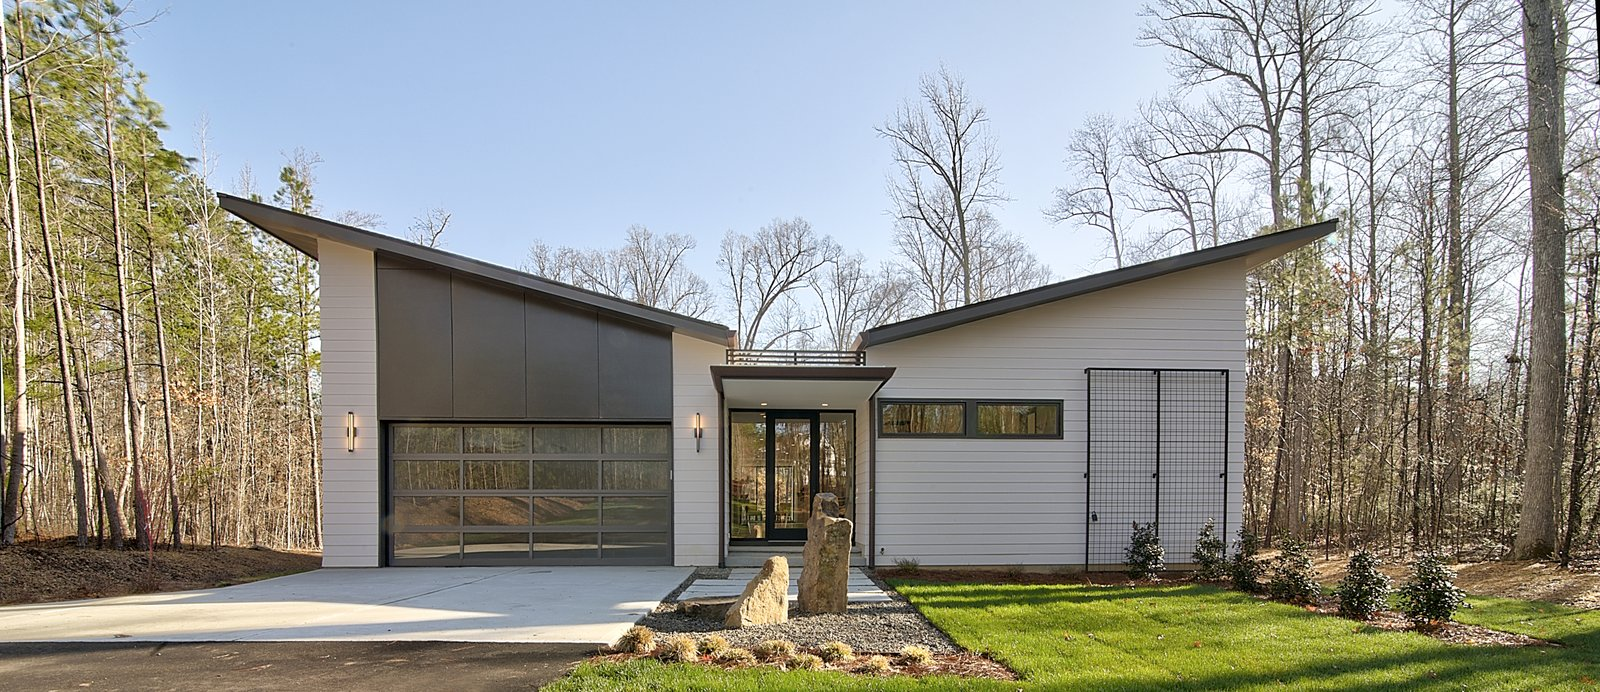 Exterior, House Building Type, Flat RoofLine, Mid-Century Building Type, Shed RoofLine, Butterfly RoofLine, Wood Siding Material, and Shingles Roof Material Exterior Front  House 23 by Zipper Architecture